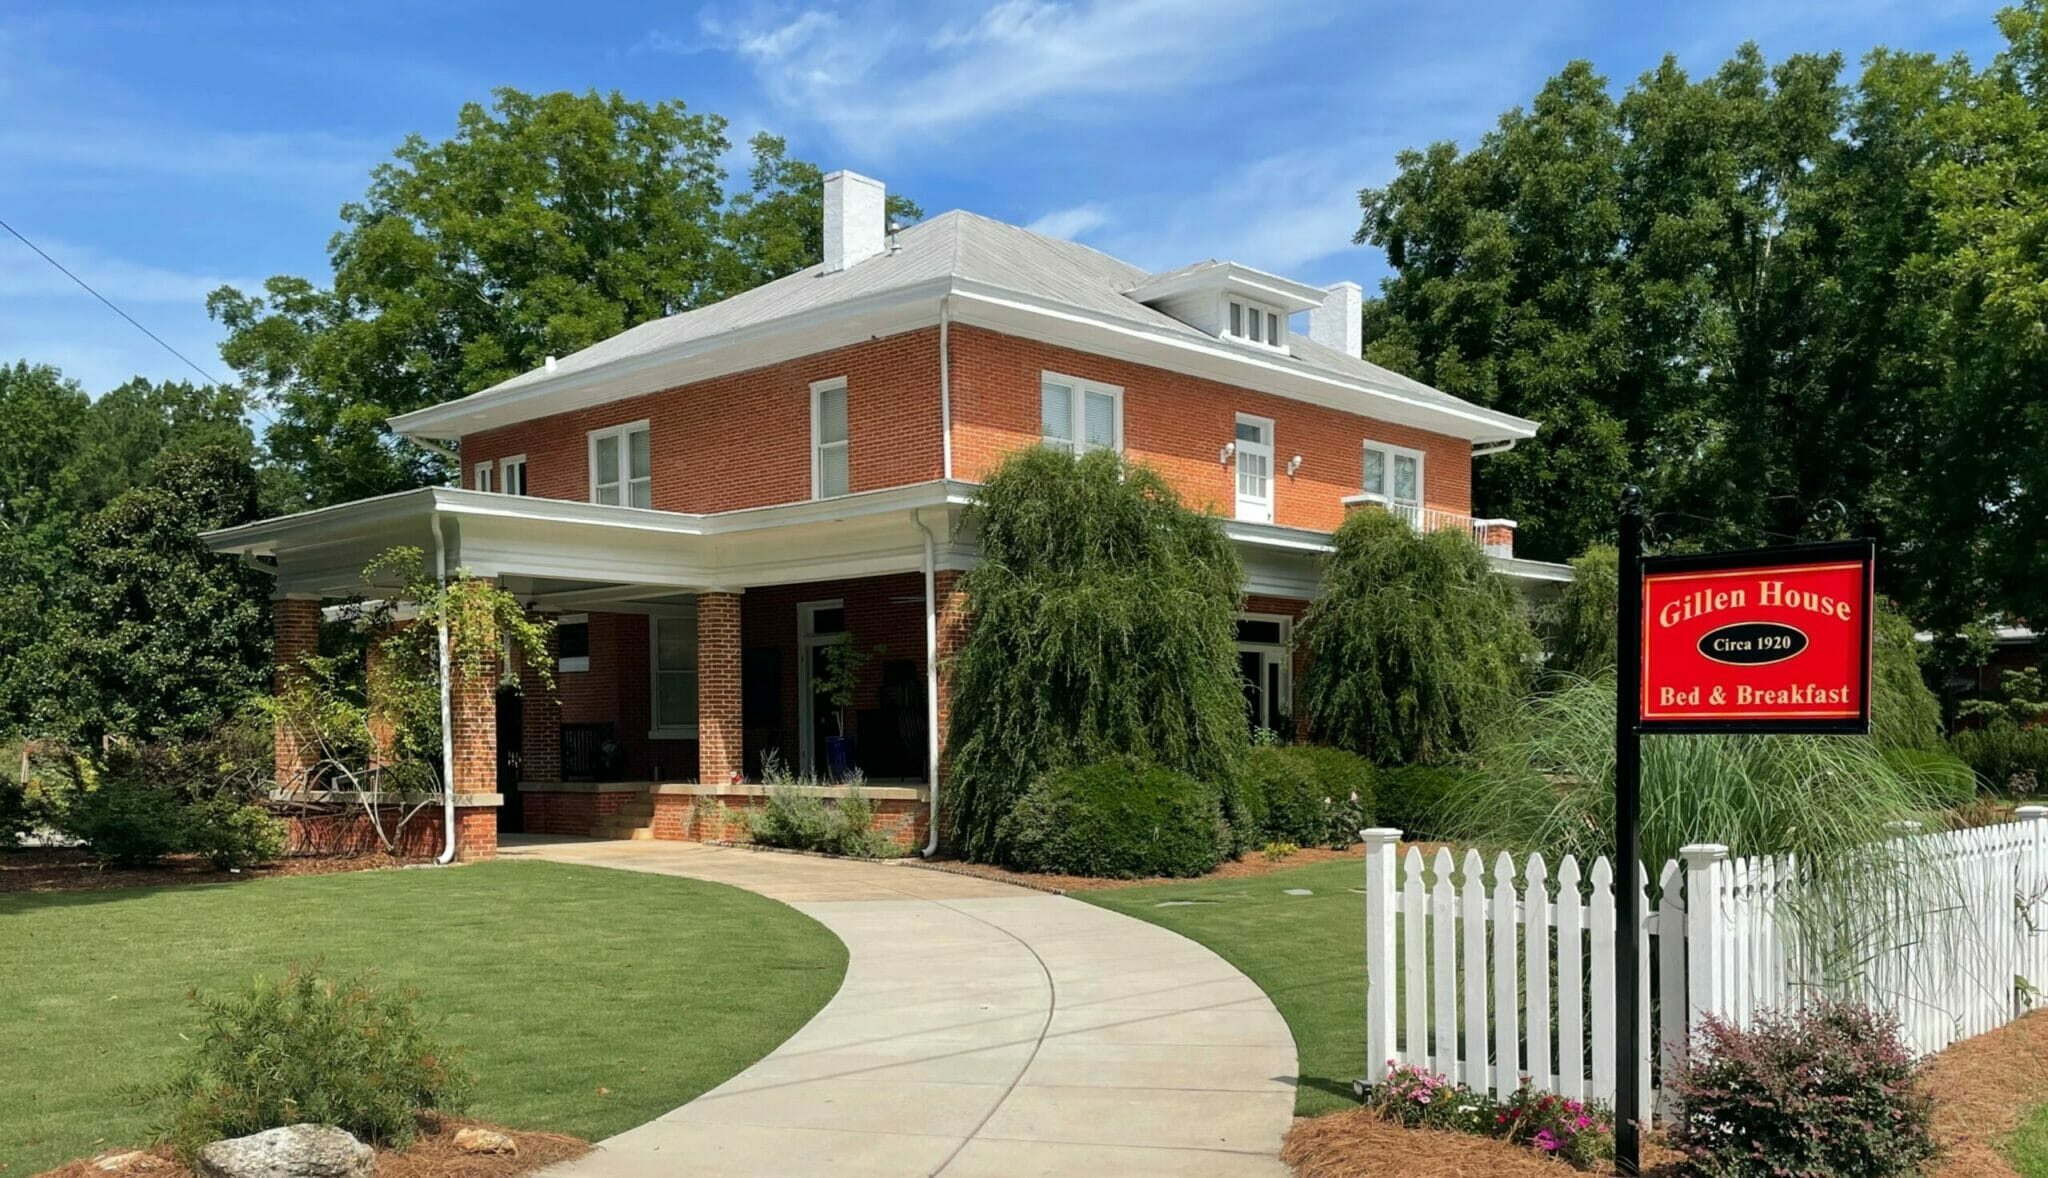 The Gillen House Luxury Bed and Breakfast